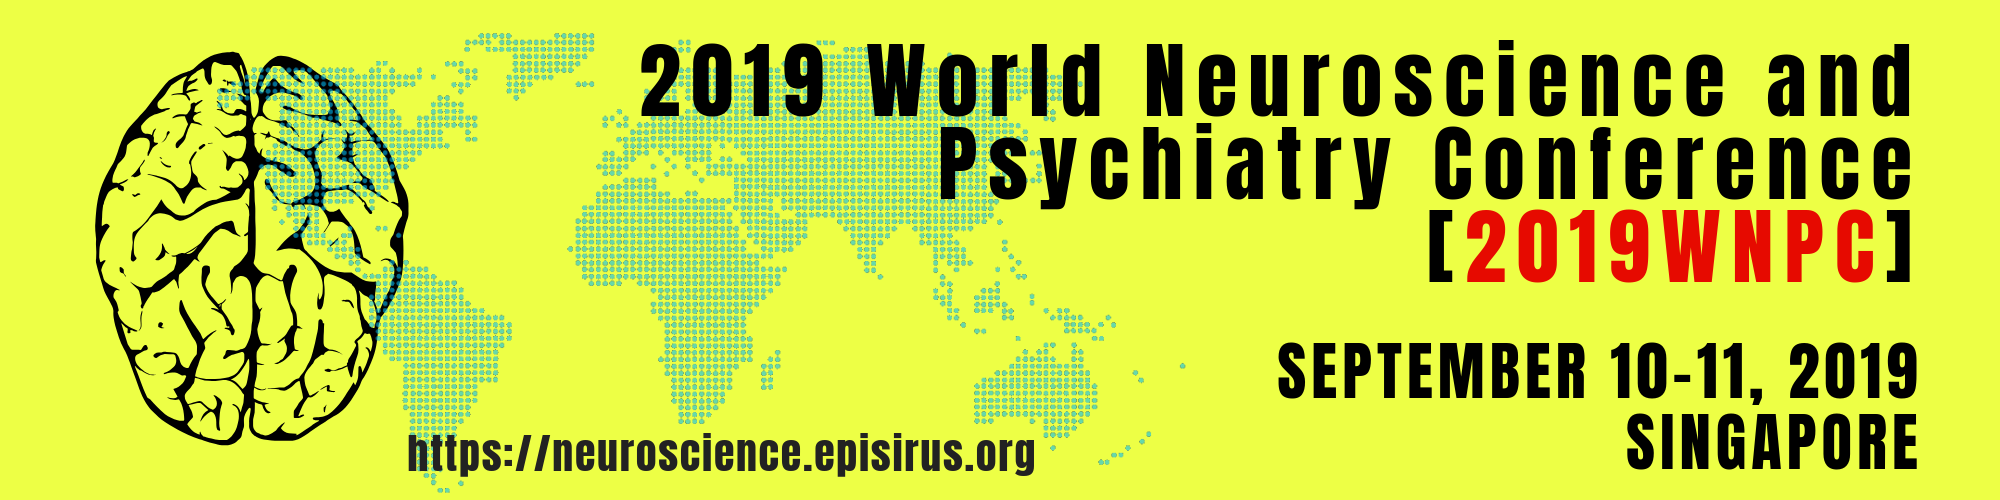 2019-world-neuroscience-and-psychiatry-conference